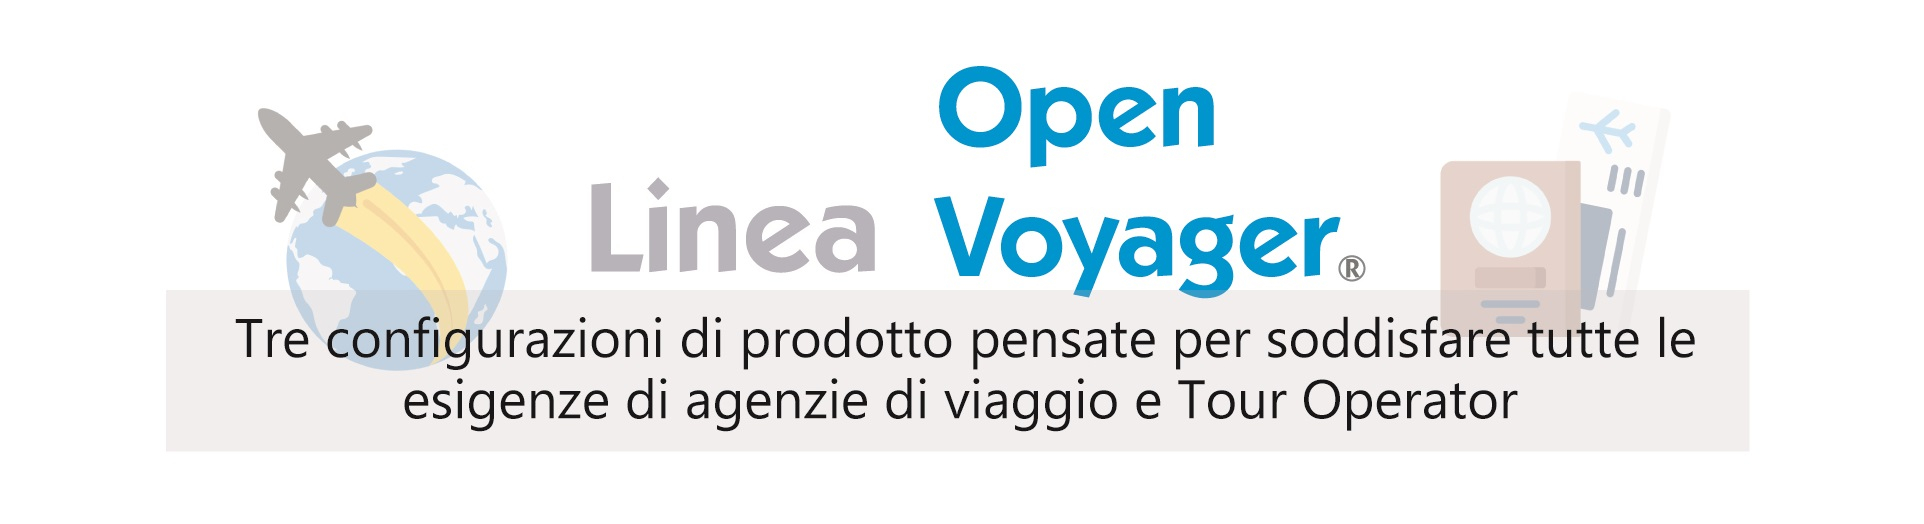 OpenVoyager